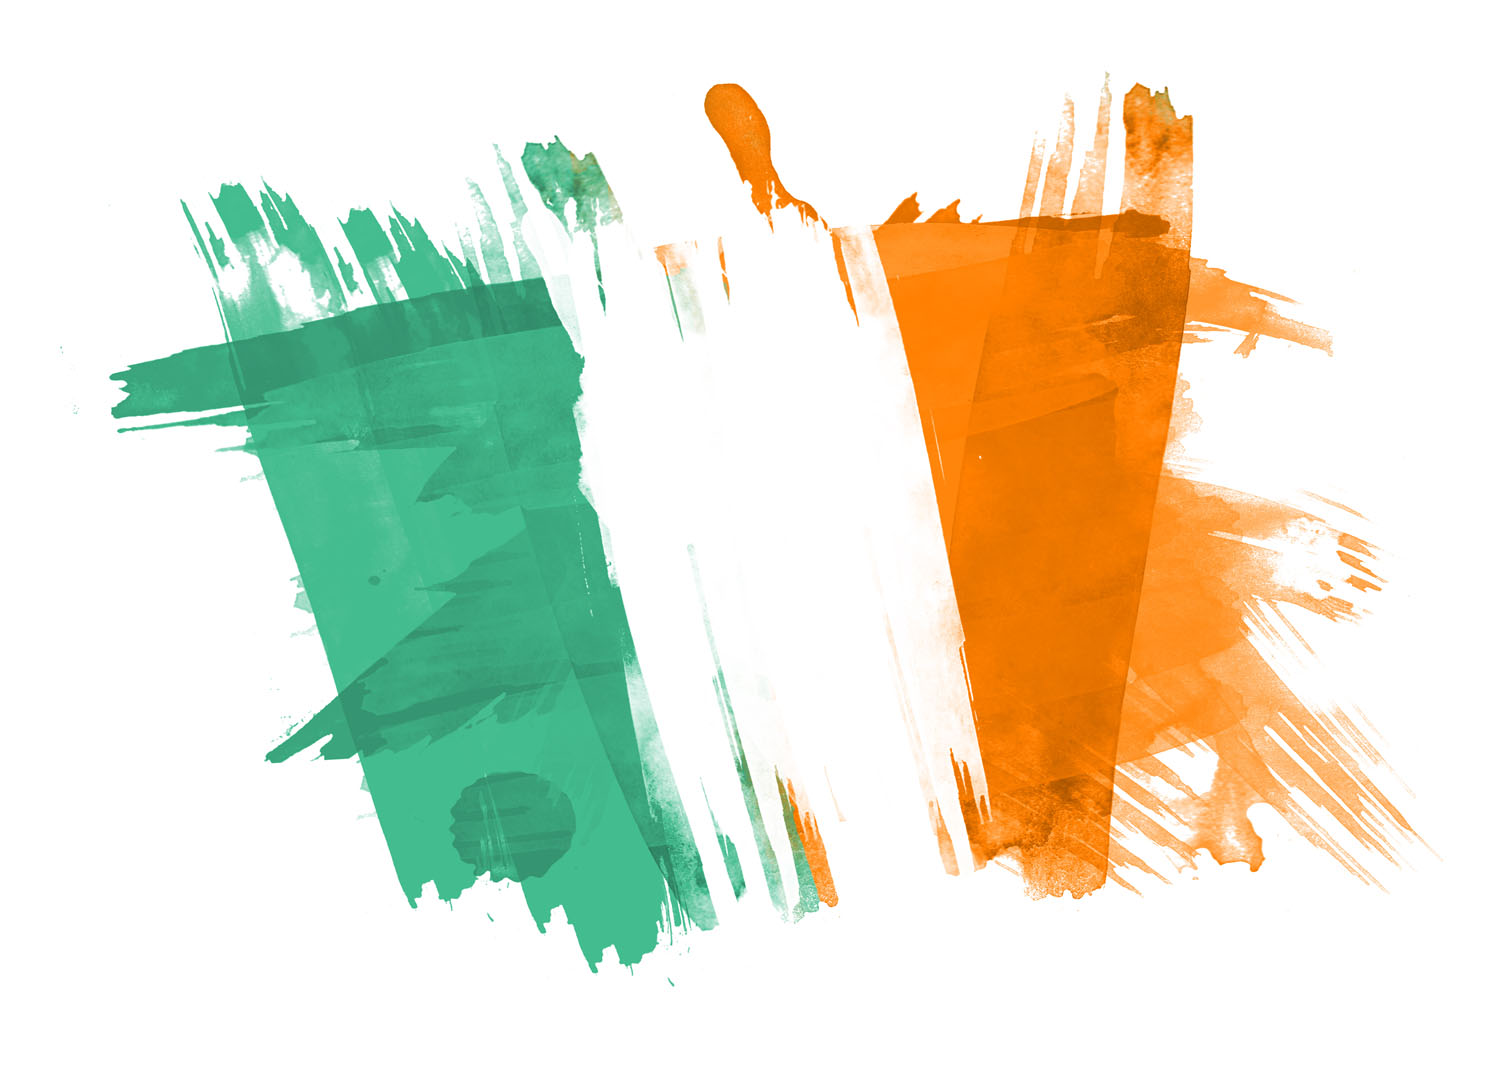 irish-flag-ireland